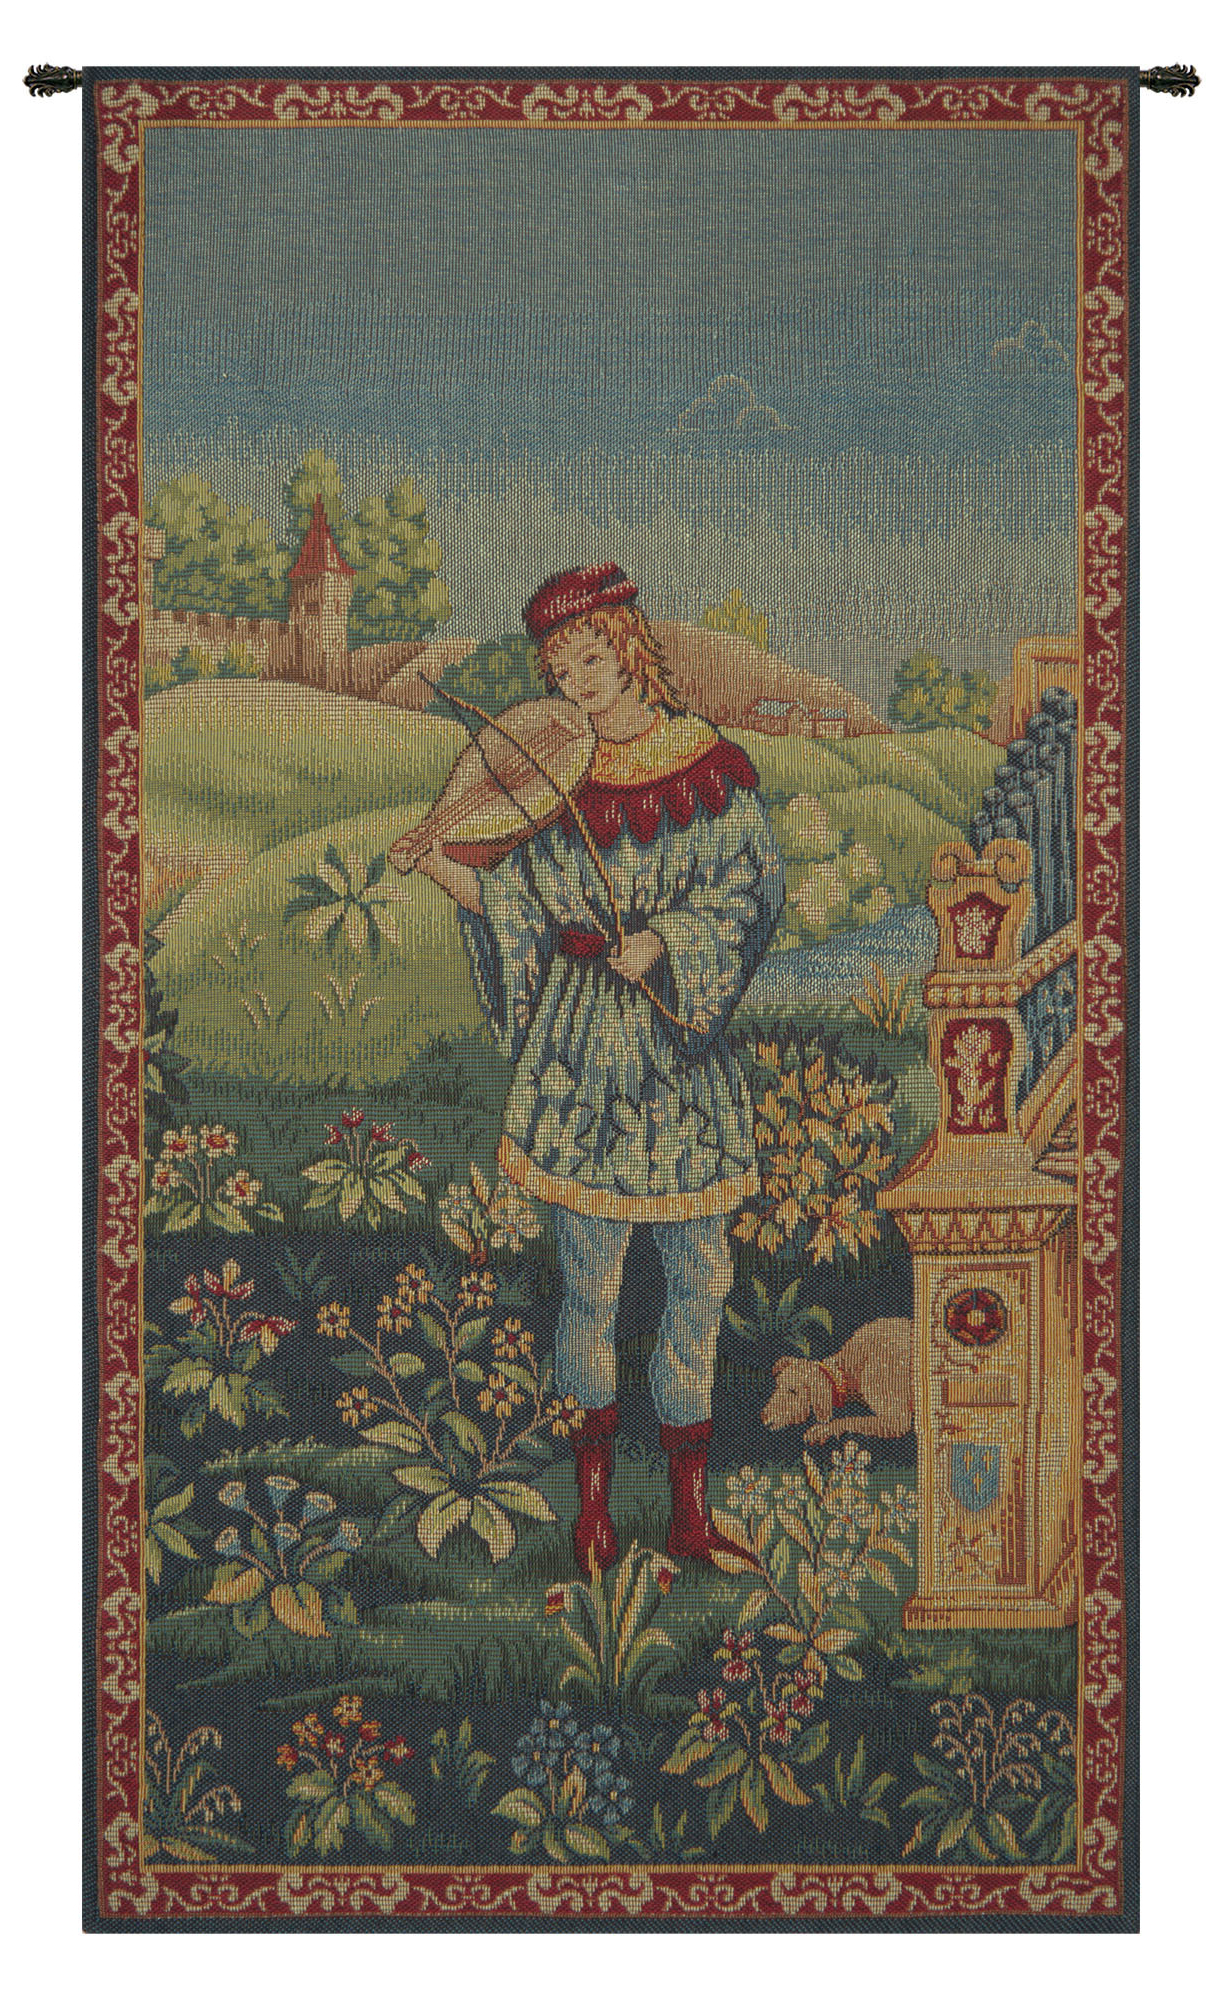 Blended Fabric Bellagio Scalinata Wall Hangings Within Most Current Blended Fabric Le Troubadour Tapestry (View 3 of 20)